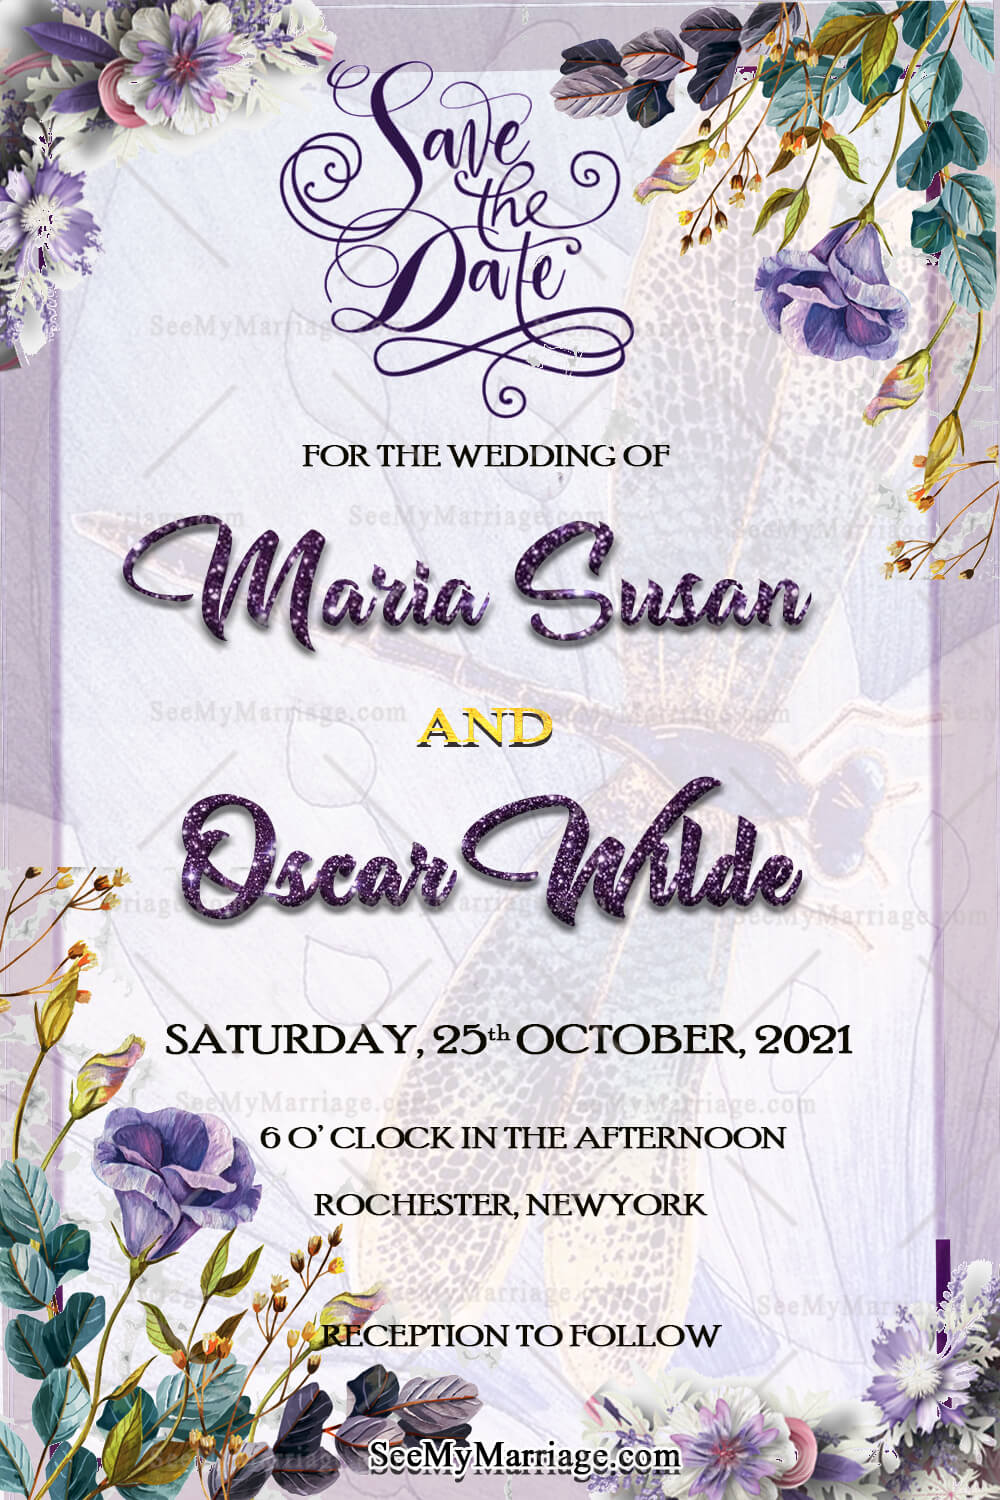 Create Invitation Videos And E Cards Online For Weddings Birthdays And Other Events Seemymarriage